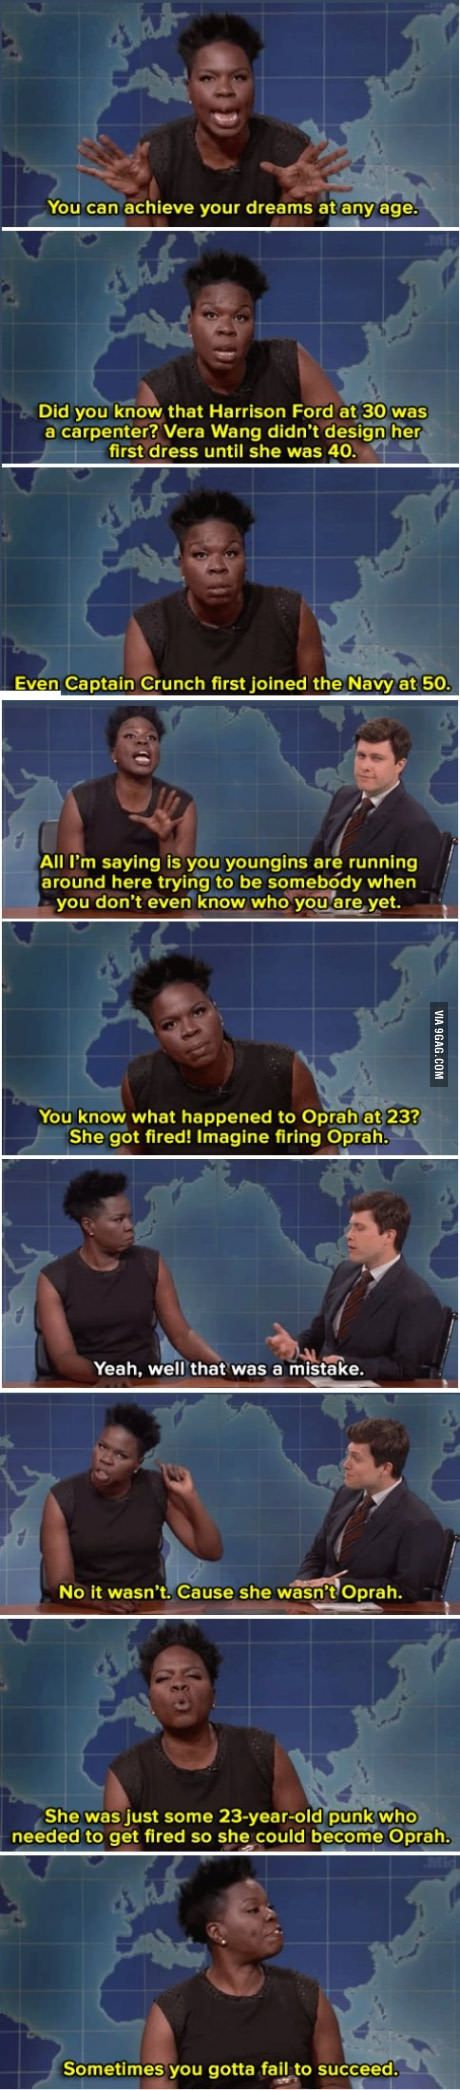 Leslie Jones on achieving your dreams